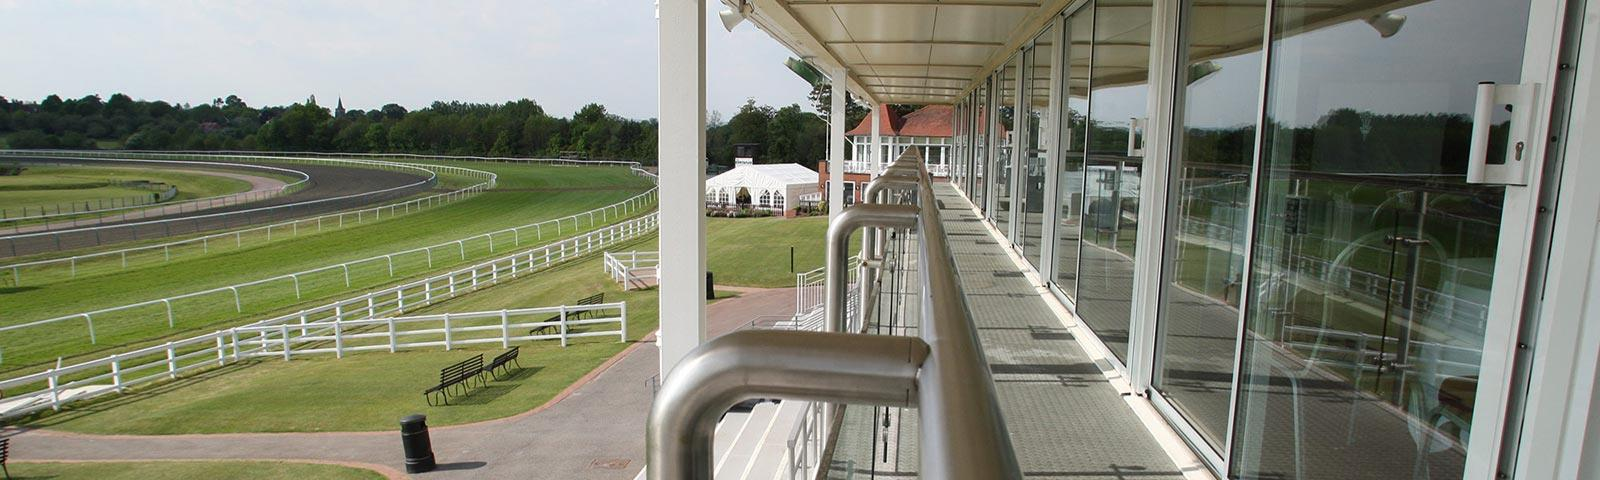 A view from the Grandstand at Lingfield Park.